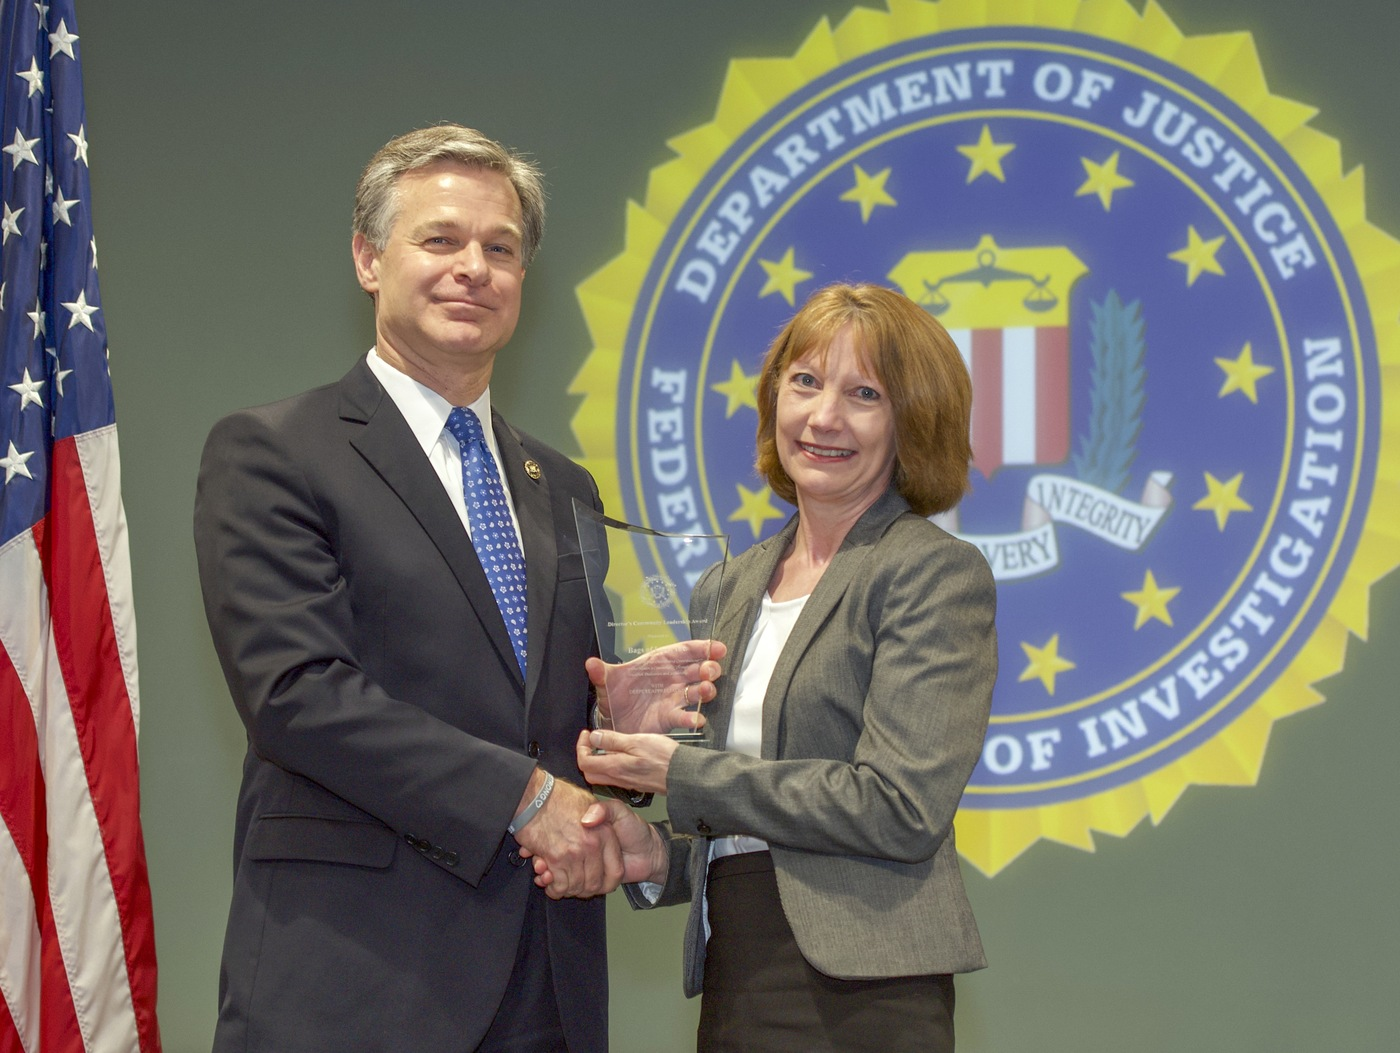 FBI Director Christopher Wray presents Portland Division recipient Bags of Love, Inc. (represented by Becky Stenzel) with the Director's Community Leadership Award (DCLA) at a ceremony at FBI Headquarters on May 3, 2019.